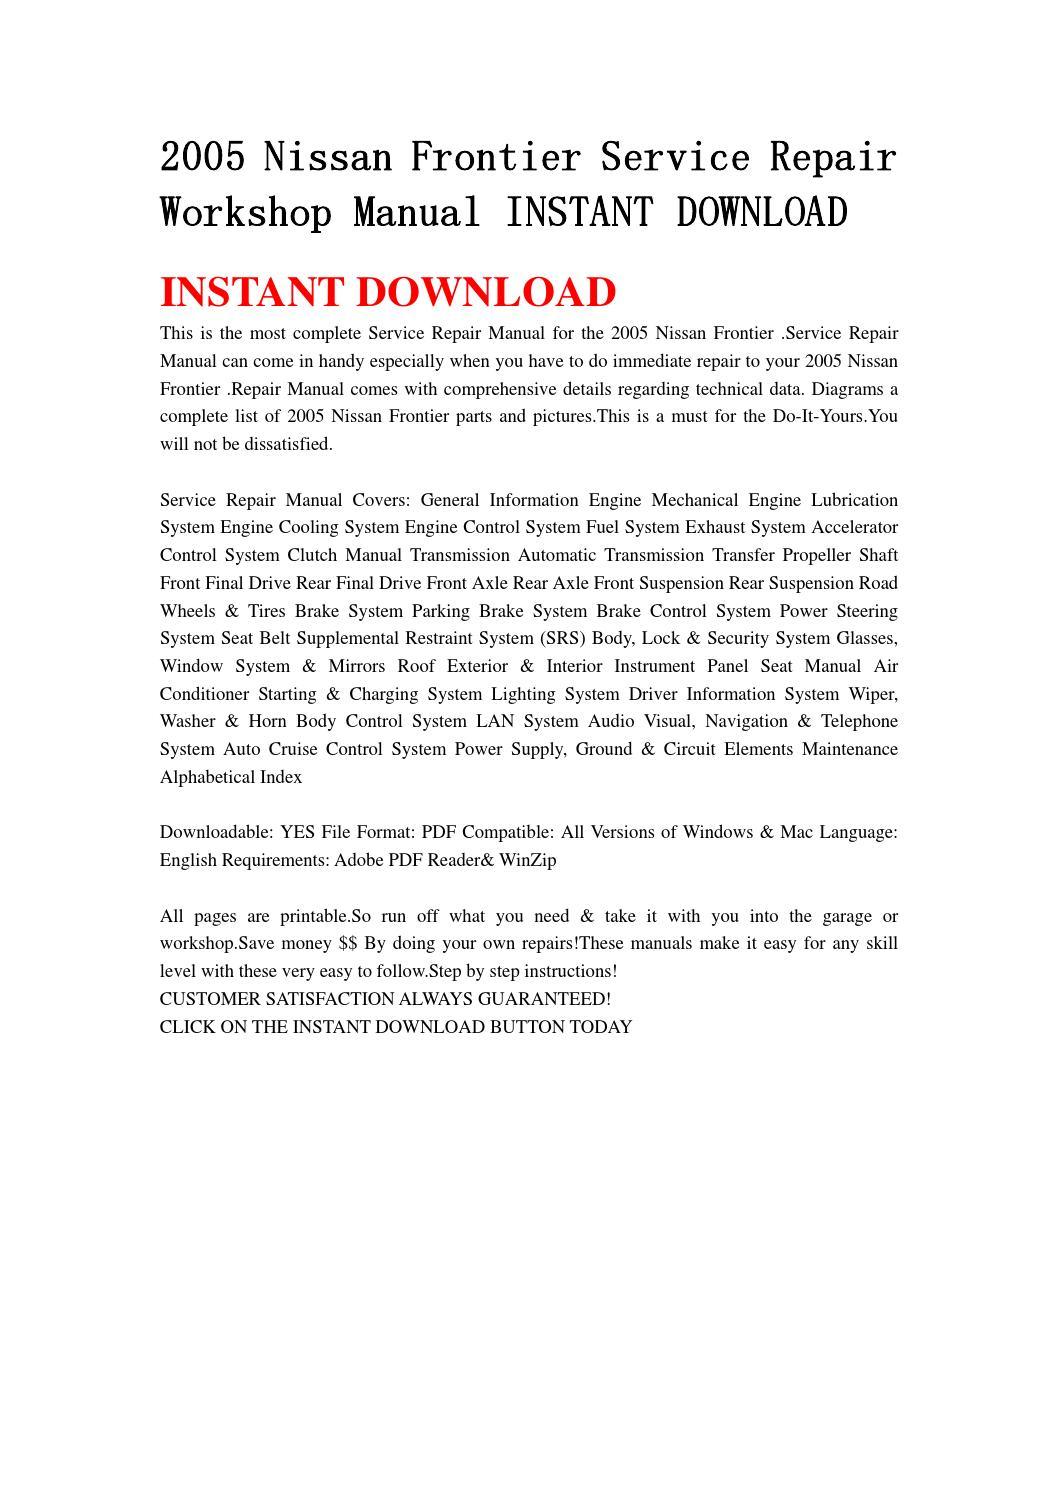 2005 Nissan Frontier Service Repair Workshop Manual Instant Download Cruise Control Diagram By Fjshefnjse Issuu